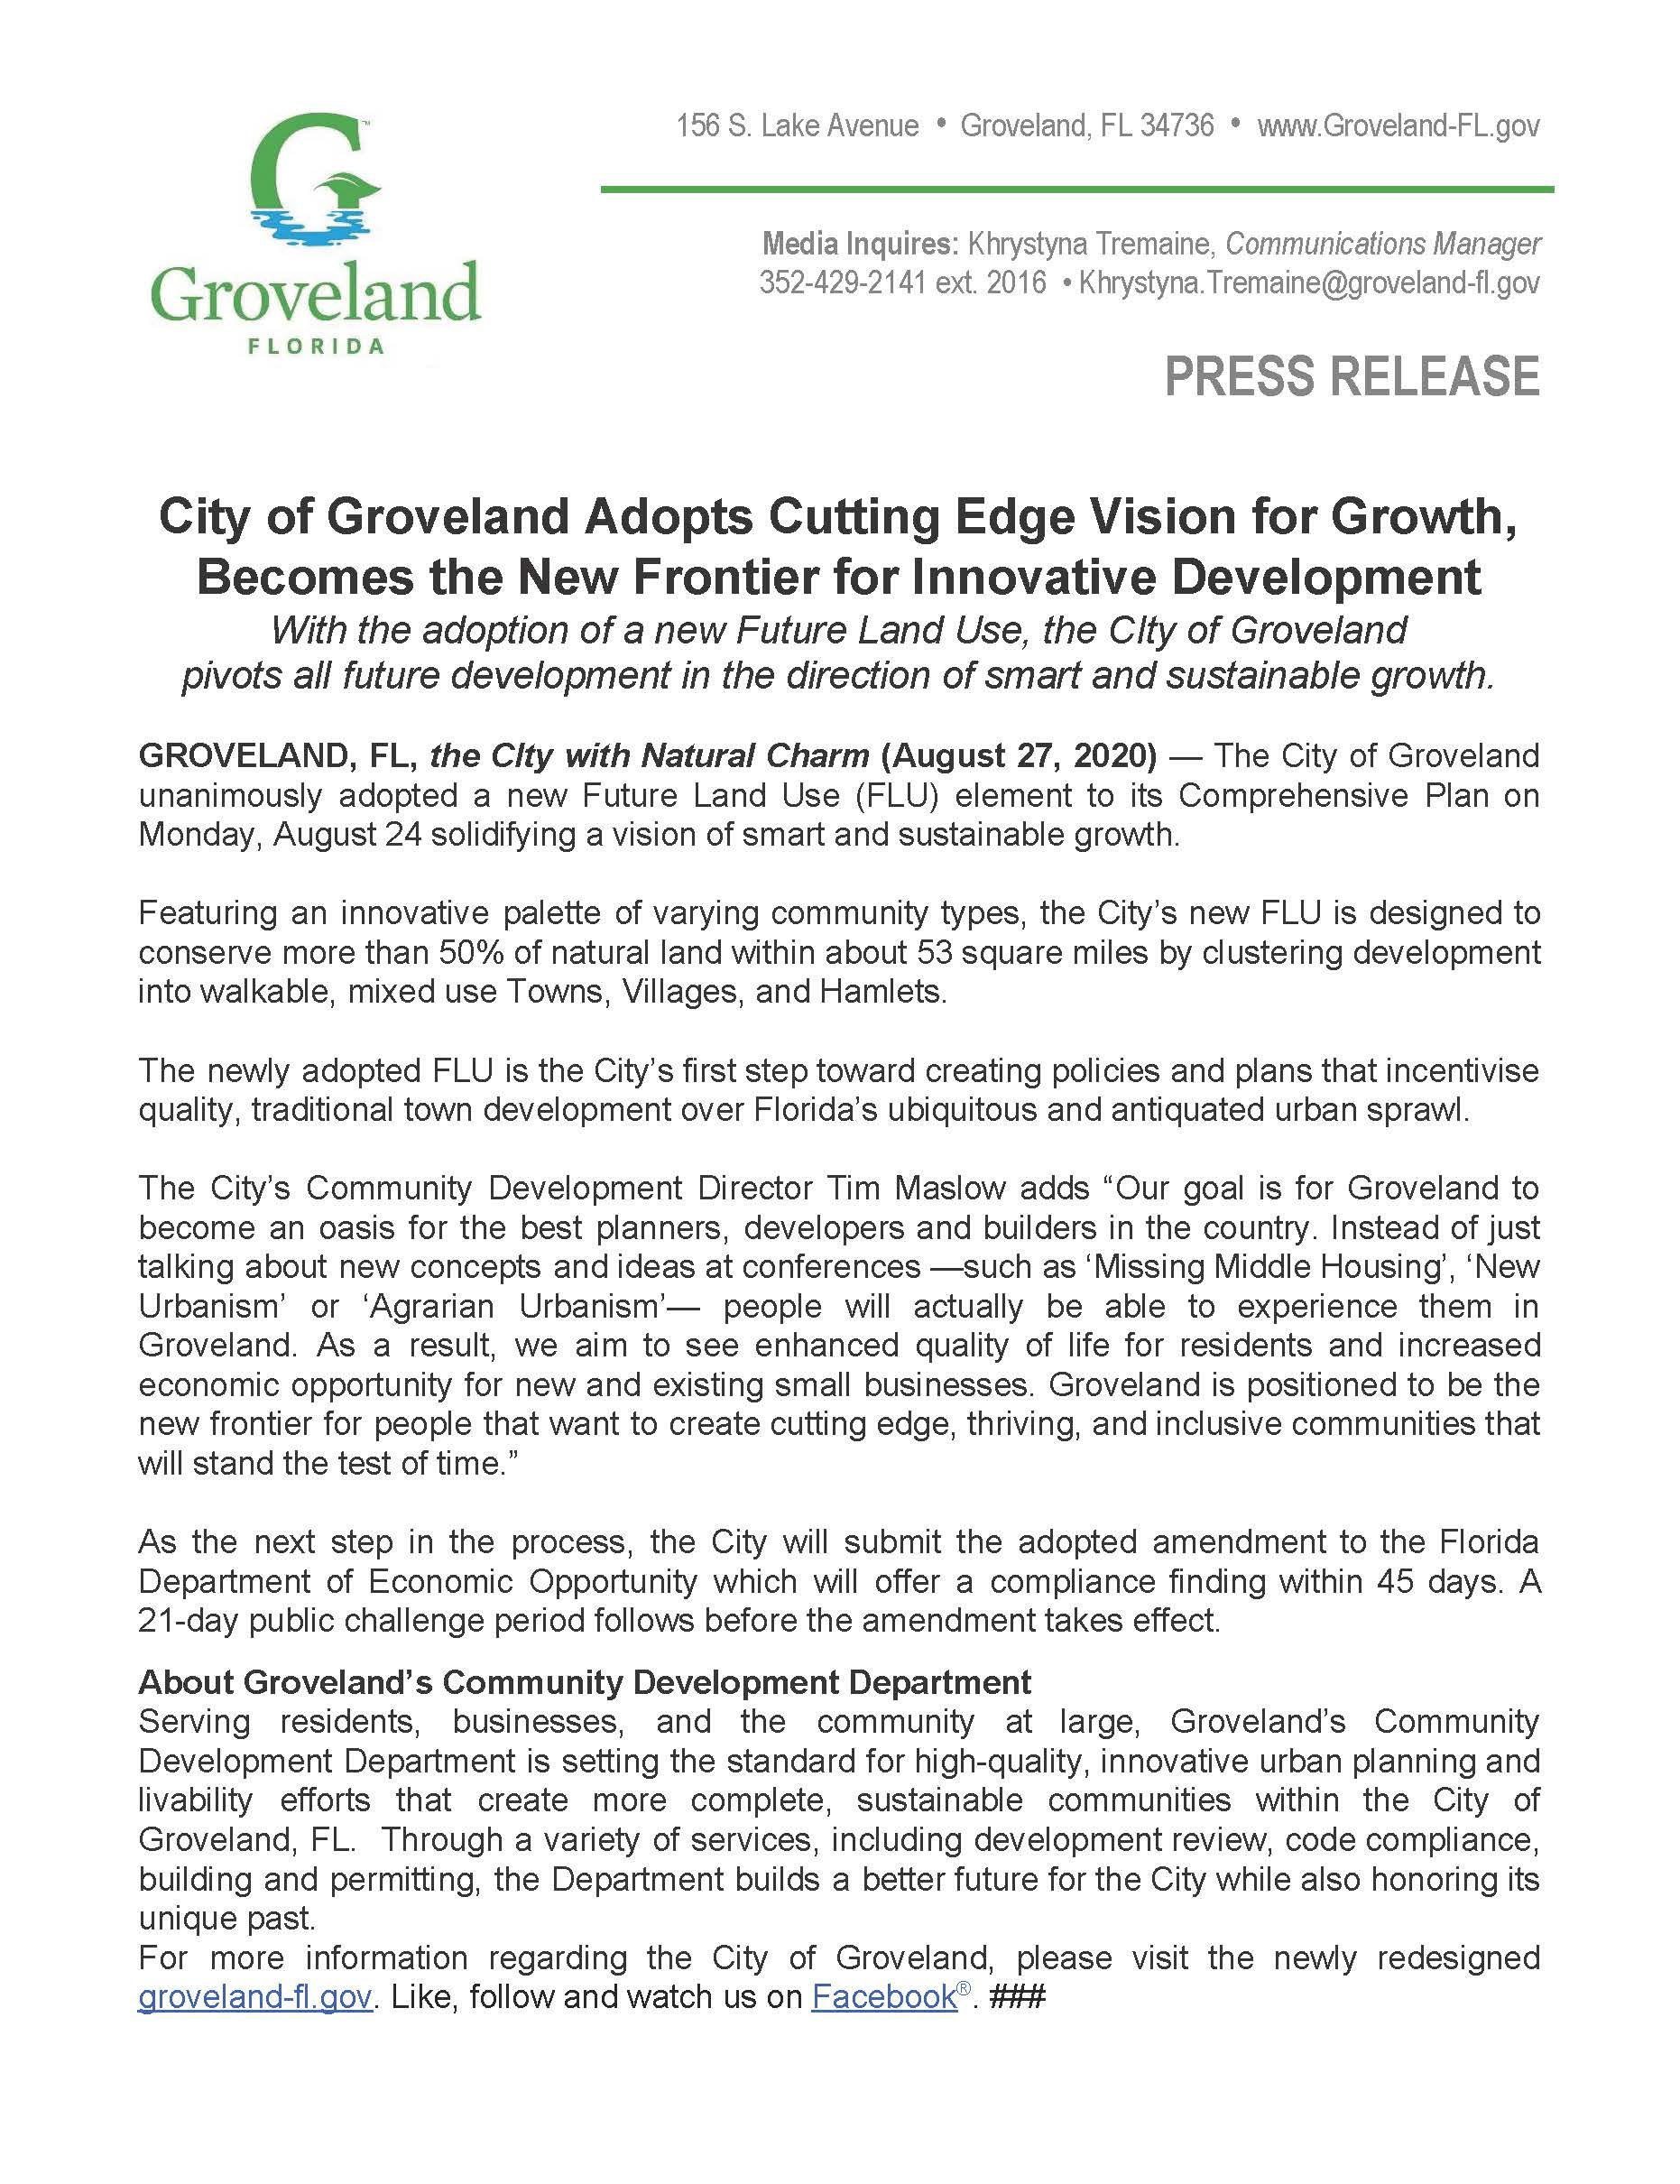 Press Release_ Future Land Use